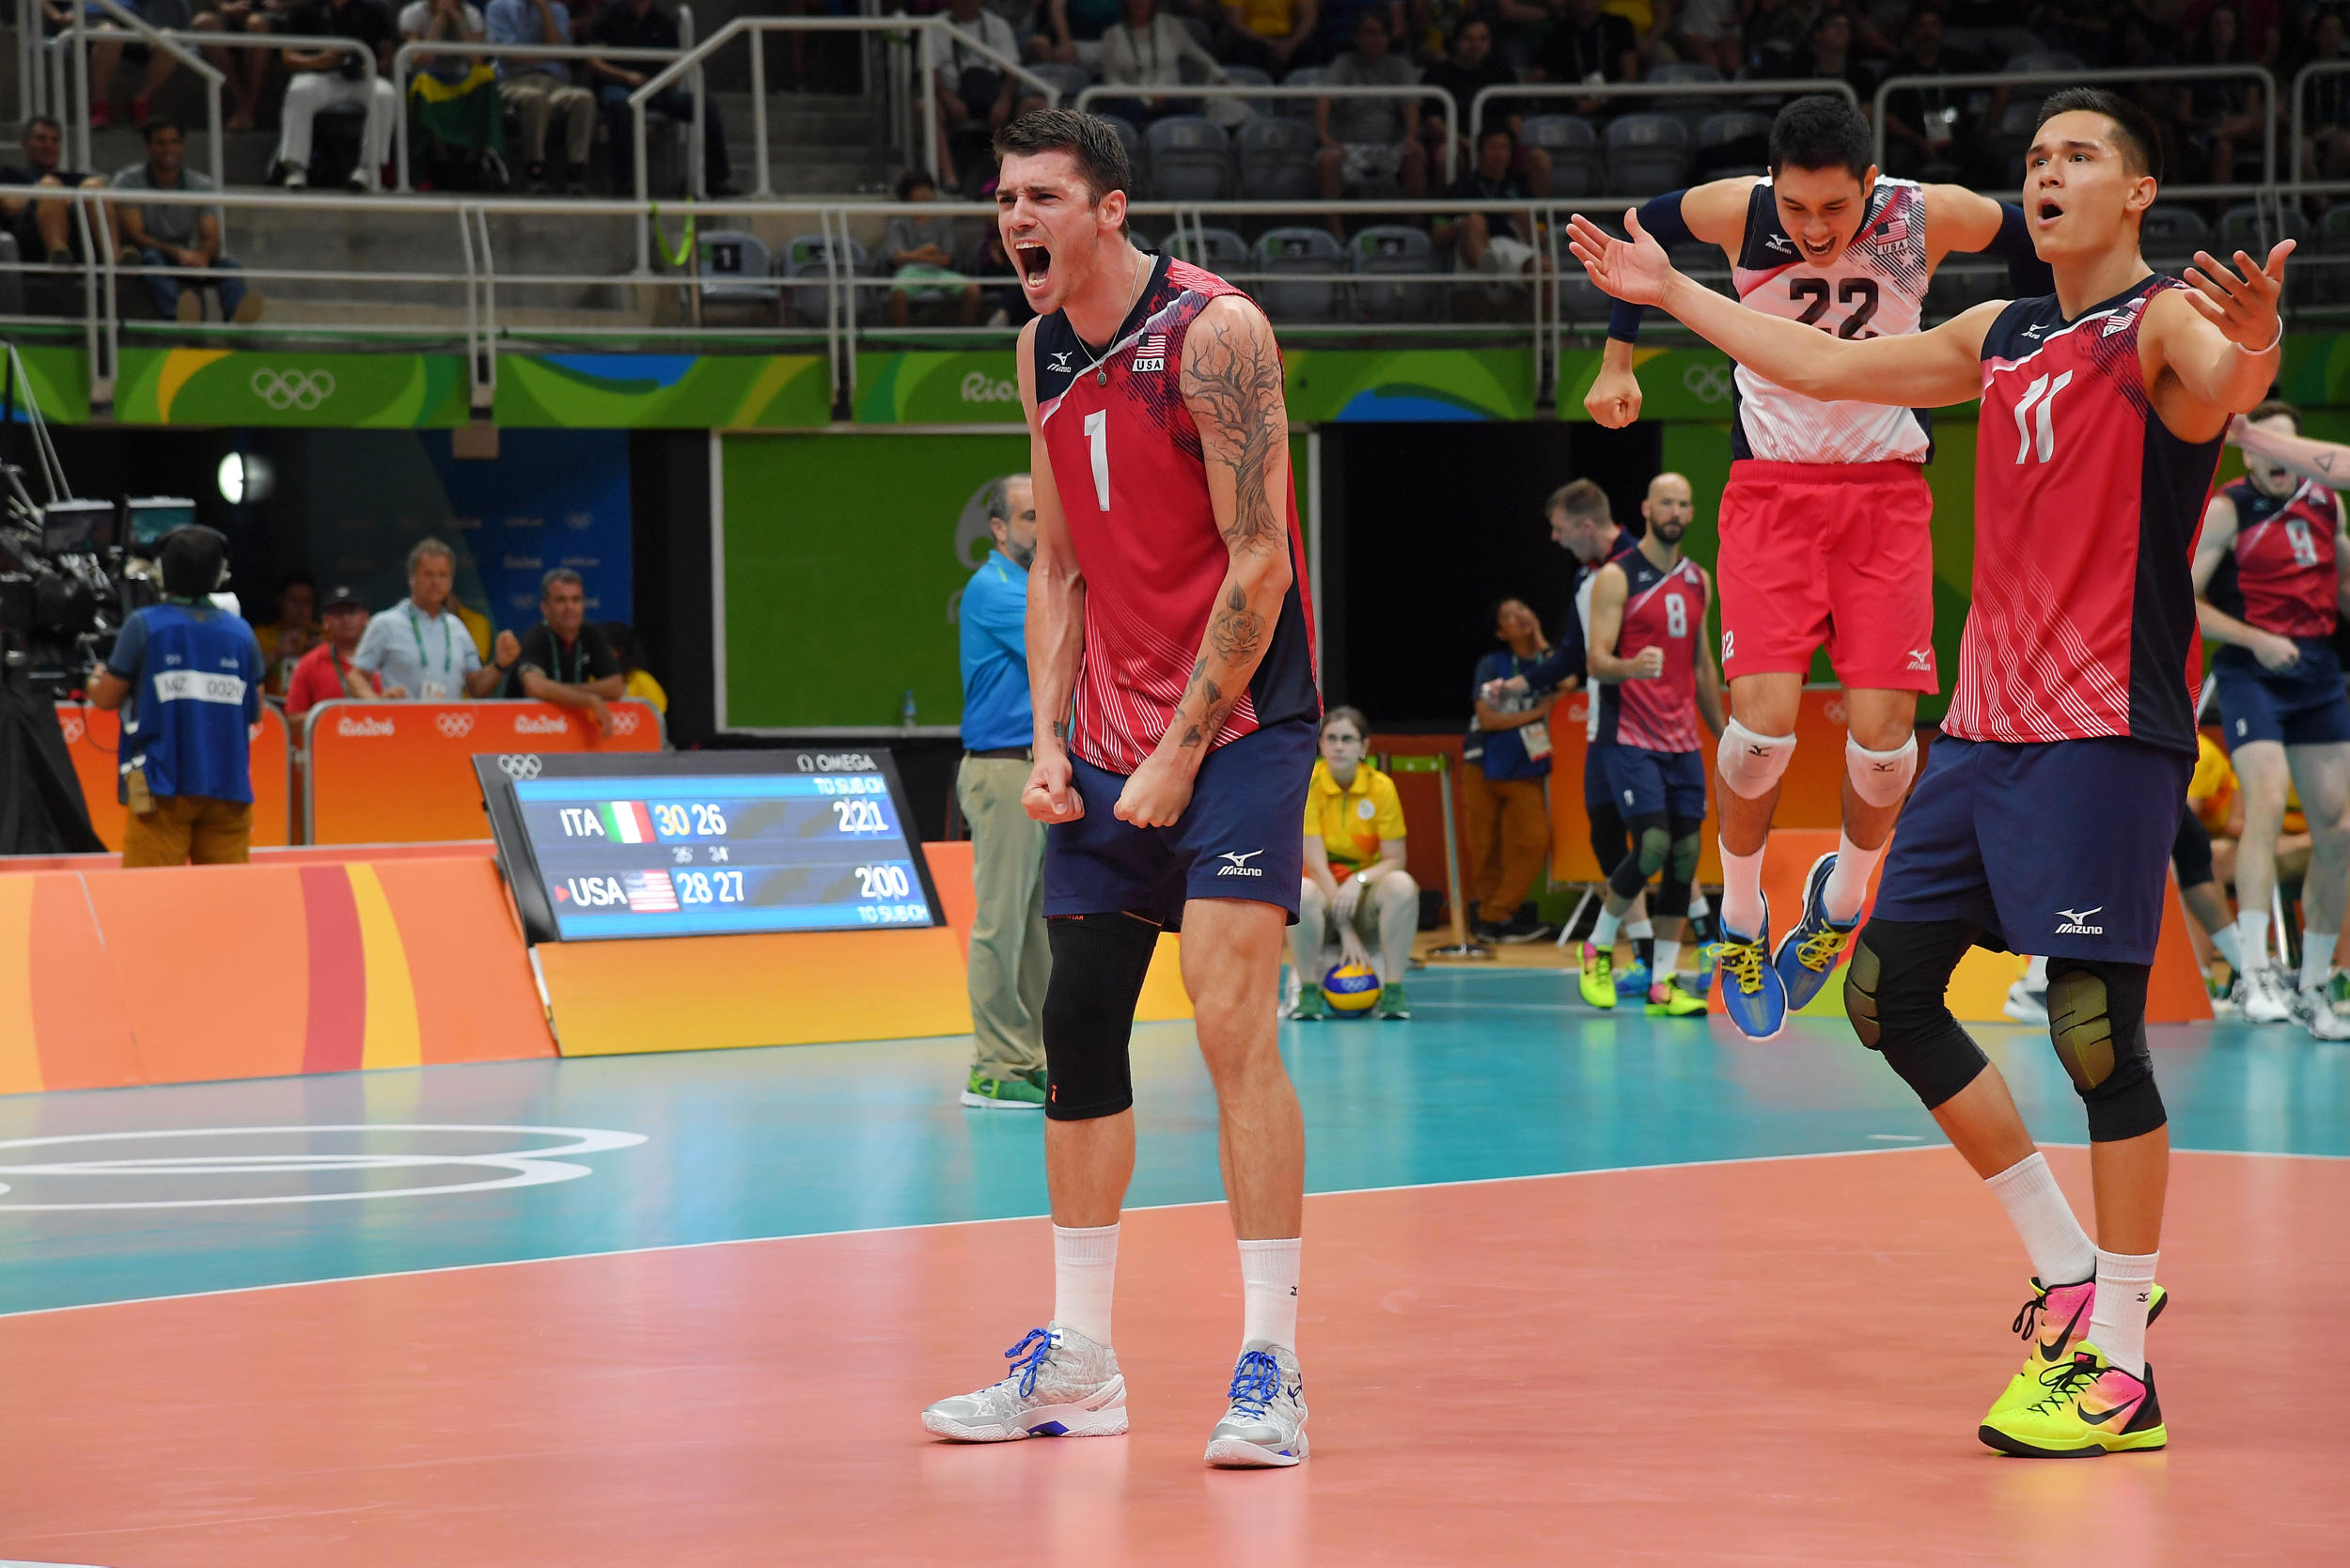 http://www.fivb.org/Vis2009/Images/GetImage.asmx?No=201653336&maxSize=960